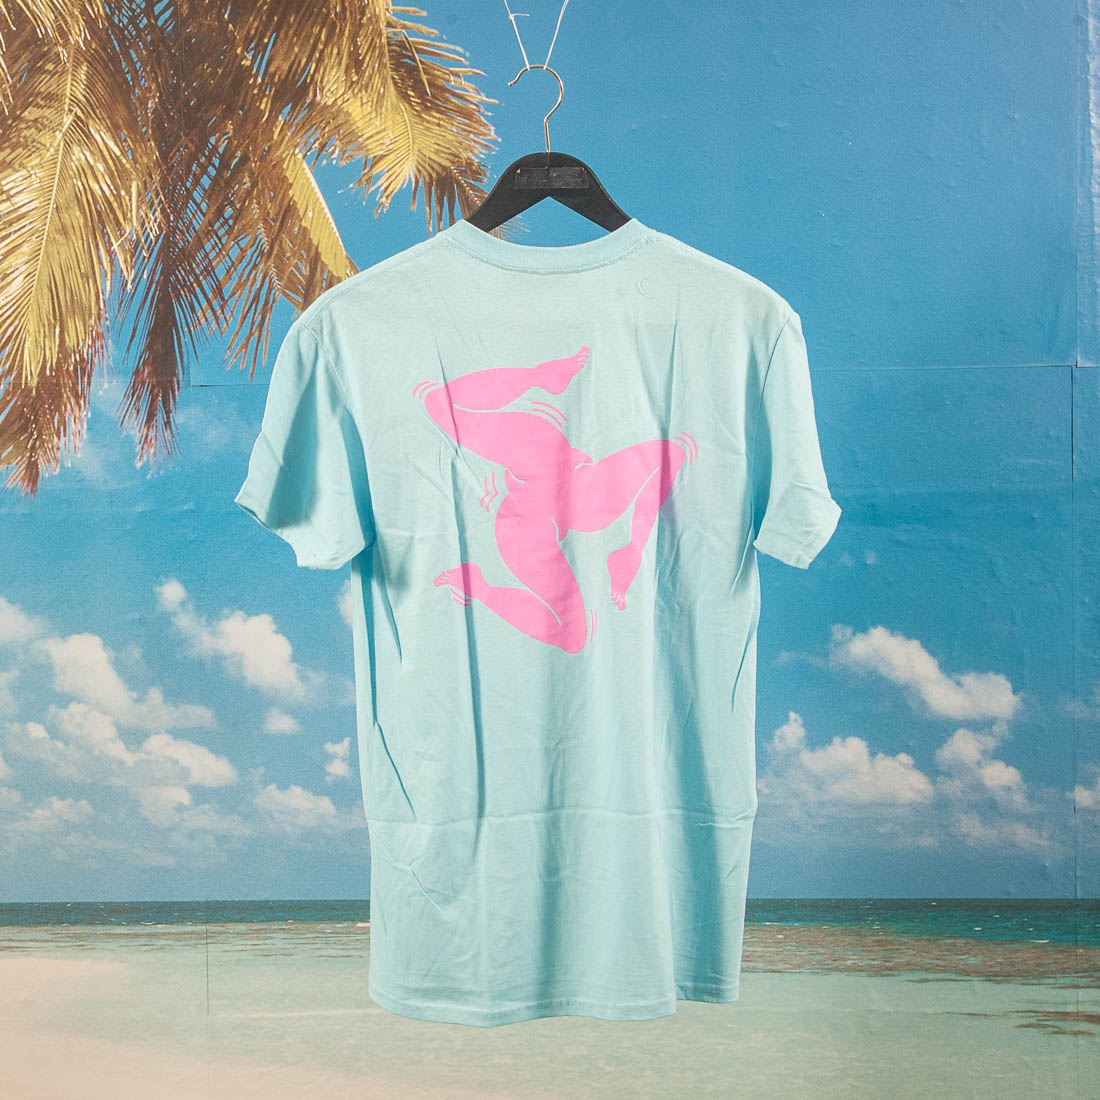 Call Me (917) - Surf Legs T-Shirt - Blue